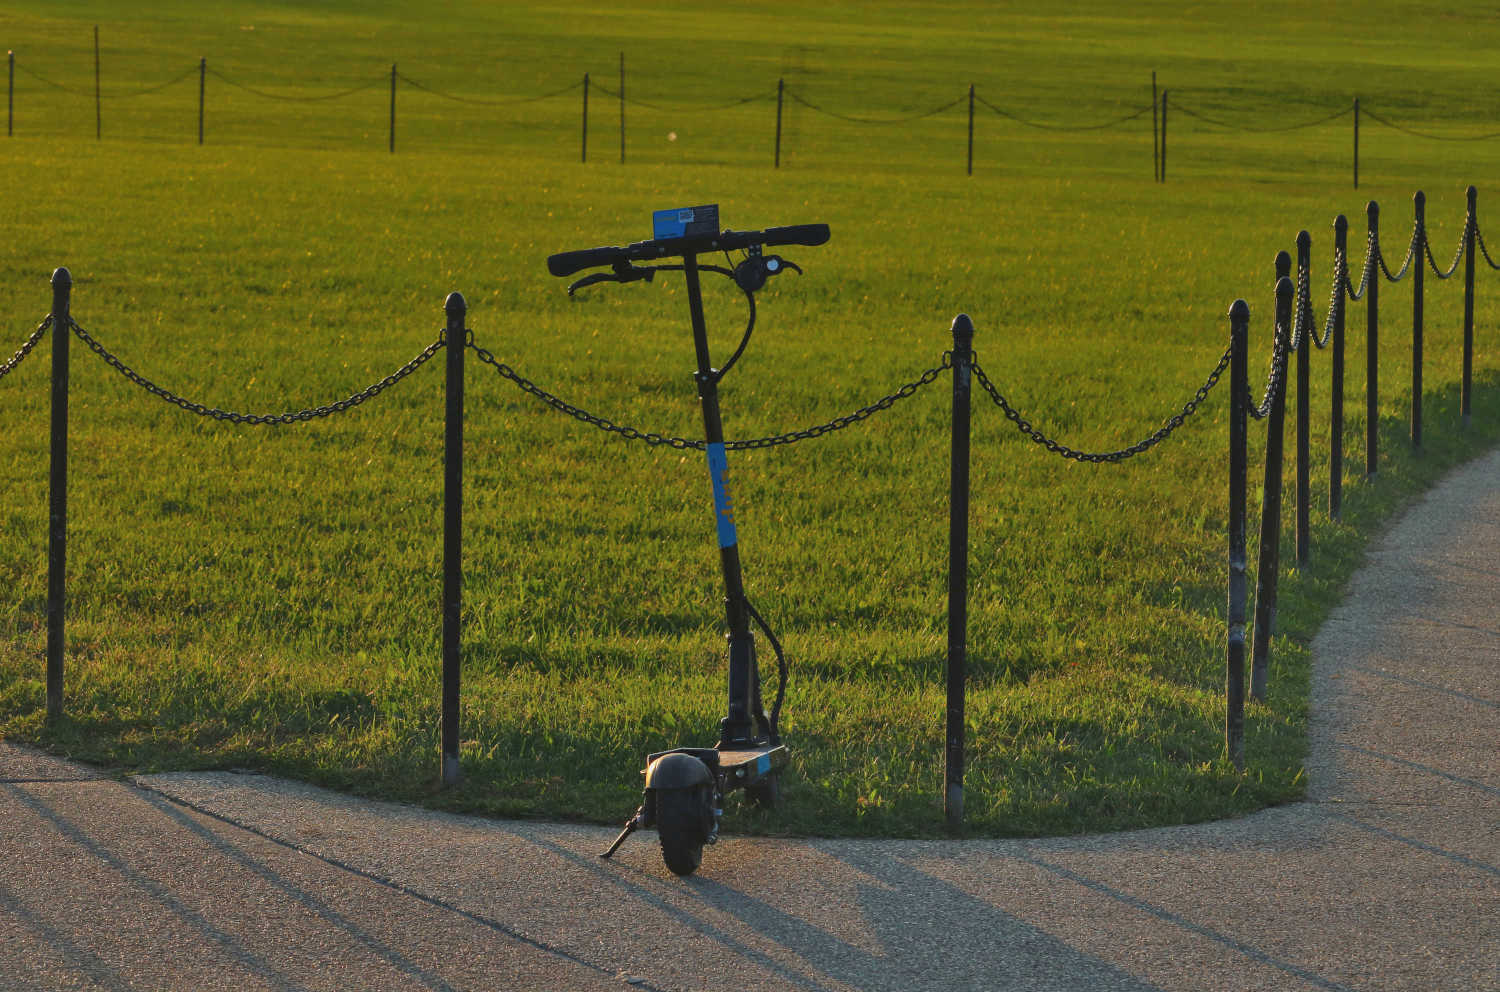 An electric scooter parked near an expanse of grass.